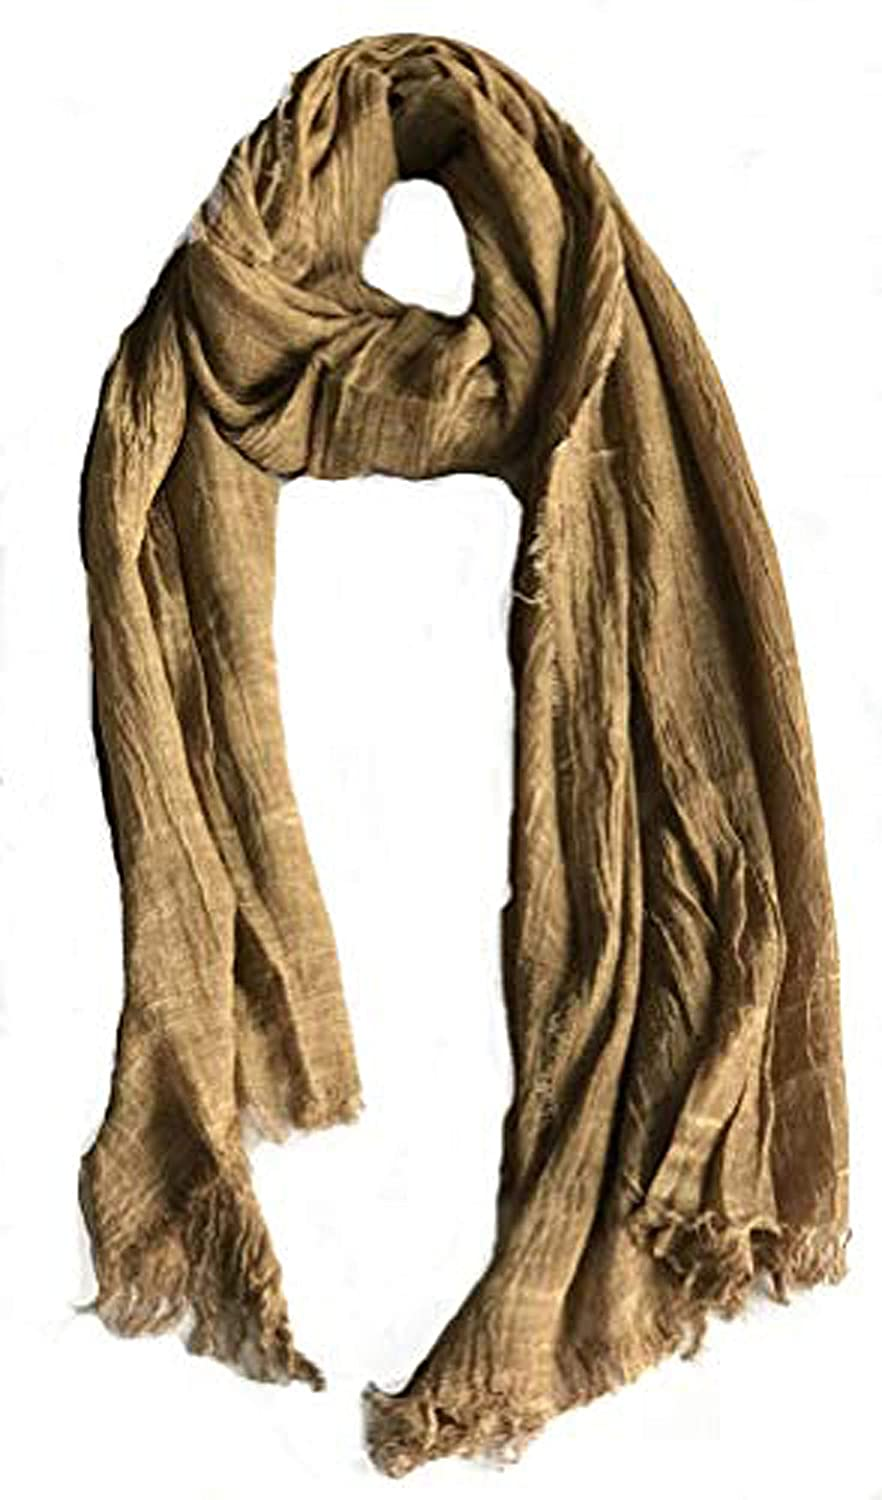 gold Colby&Co 100% Pure Natural Cotton, No Synthetic Fibers, Unisex, Scarves  Multi colors Styles